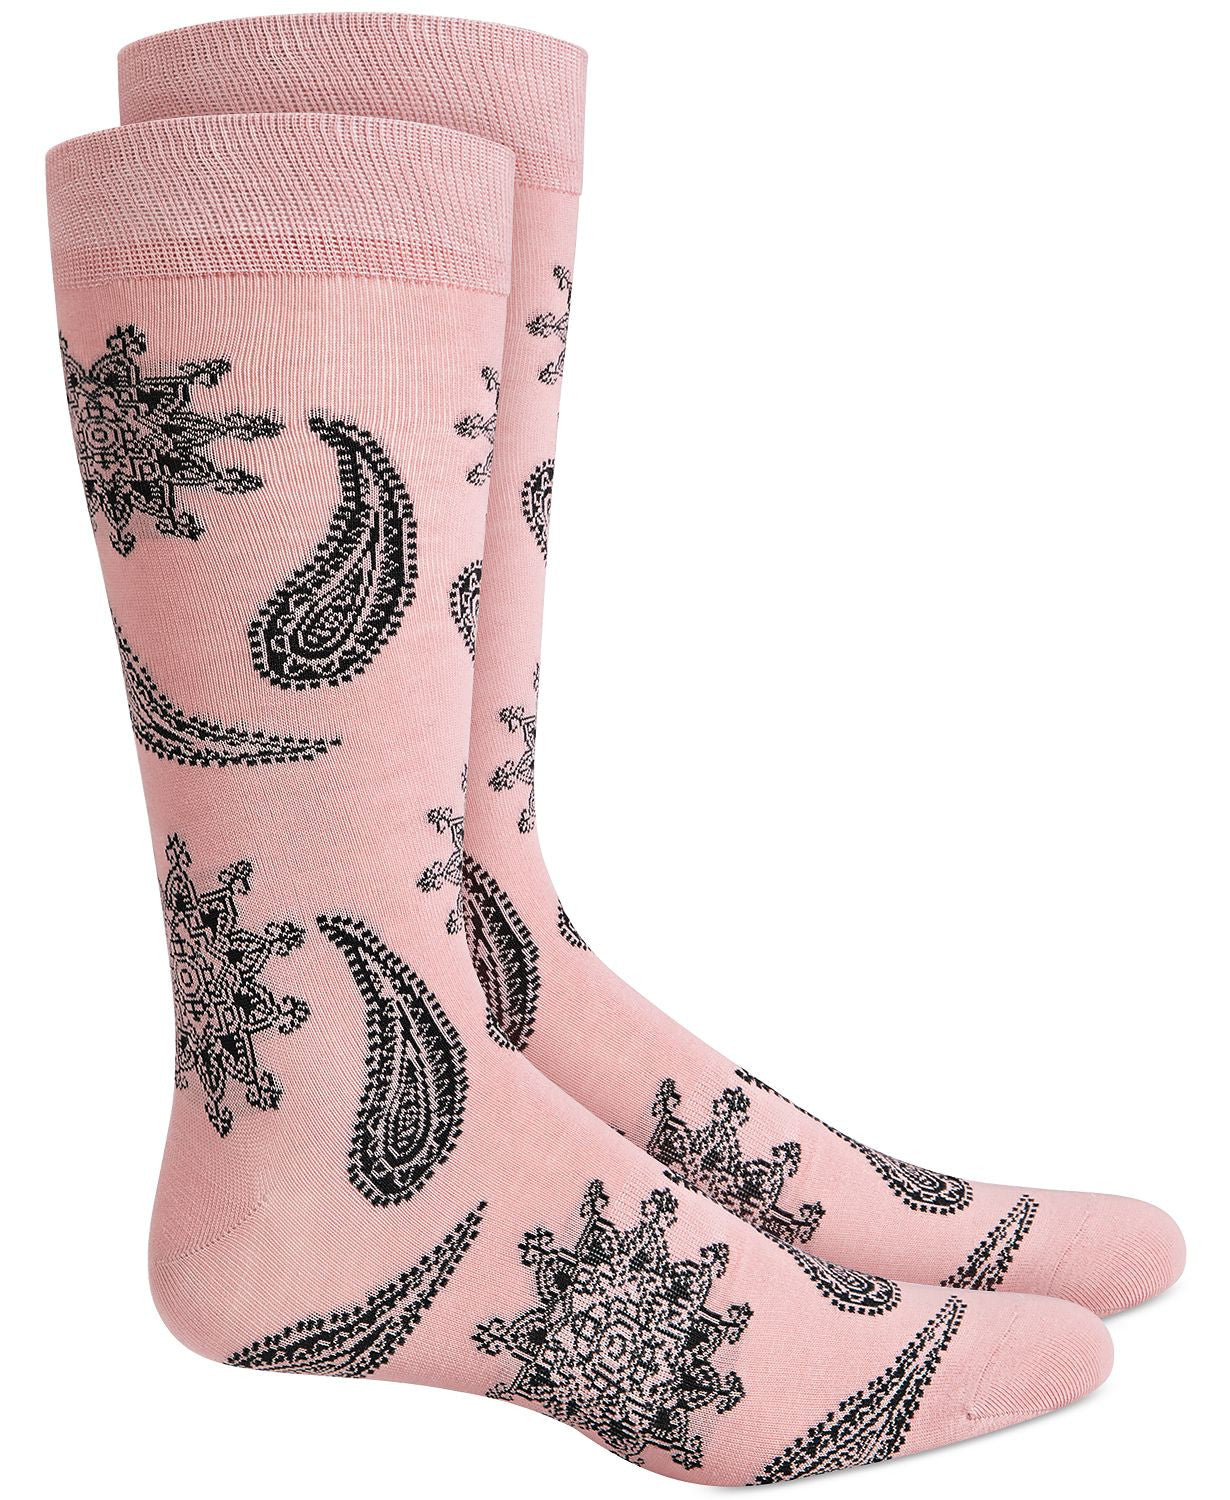 BAR III Floral Paisley Socks Pink Grey